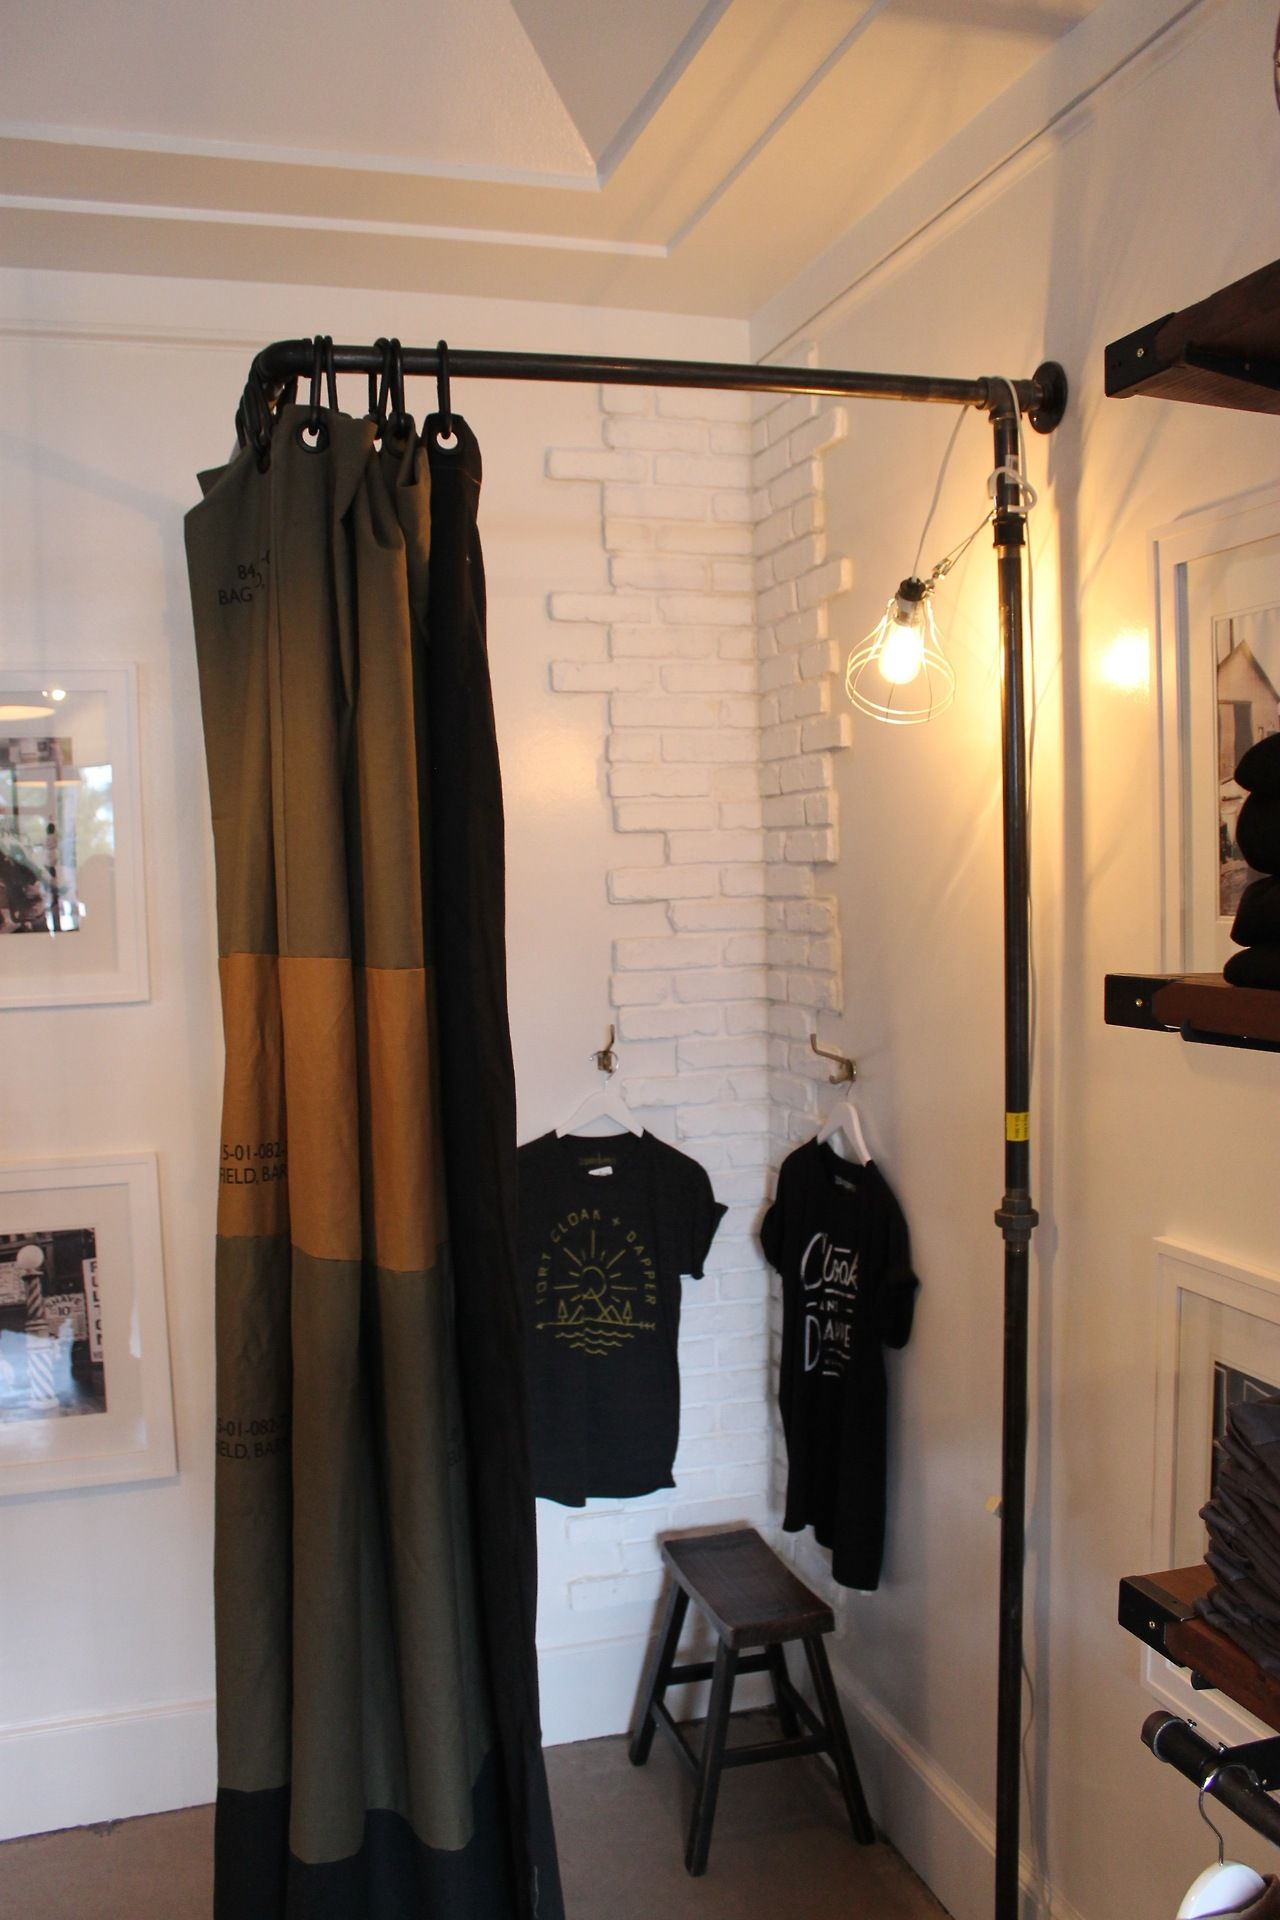 Fitting Room Designs For Retail: Clamp Light Interesting Idea For Dressing Room, Love The